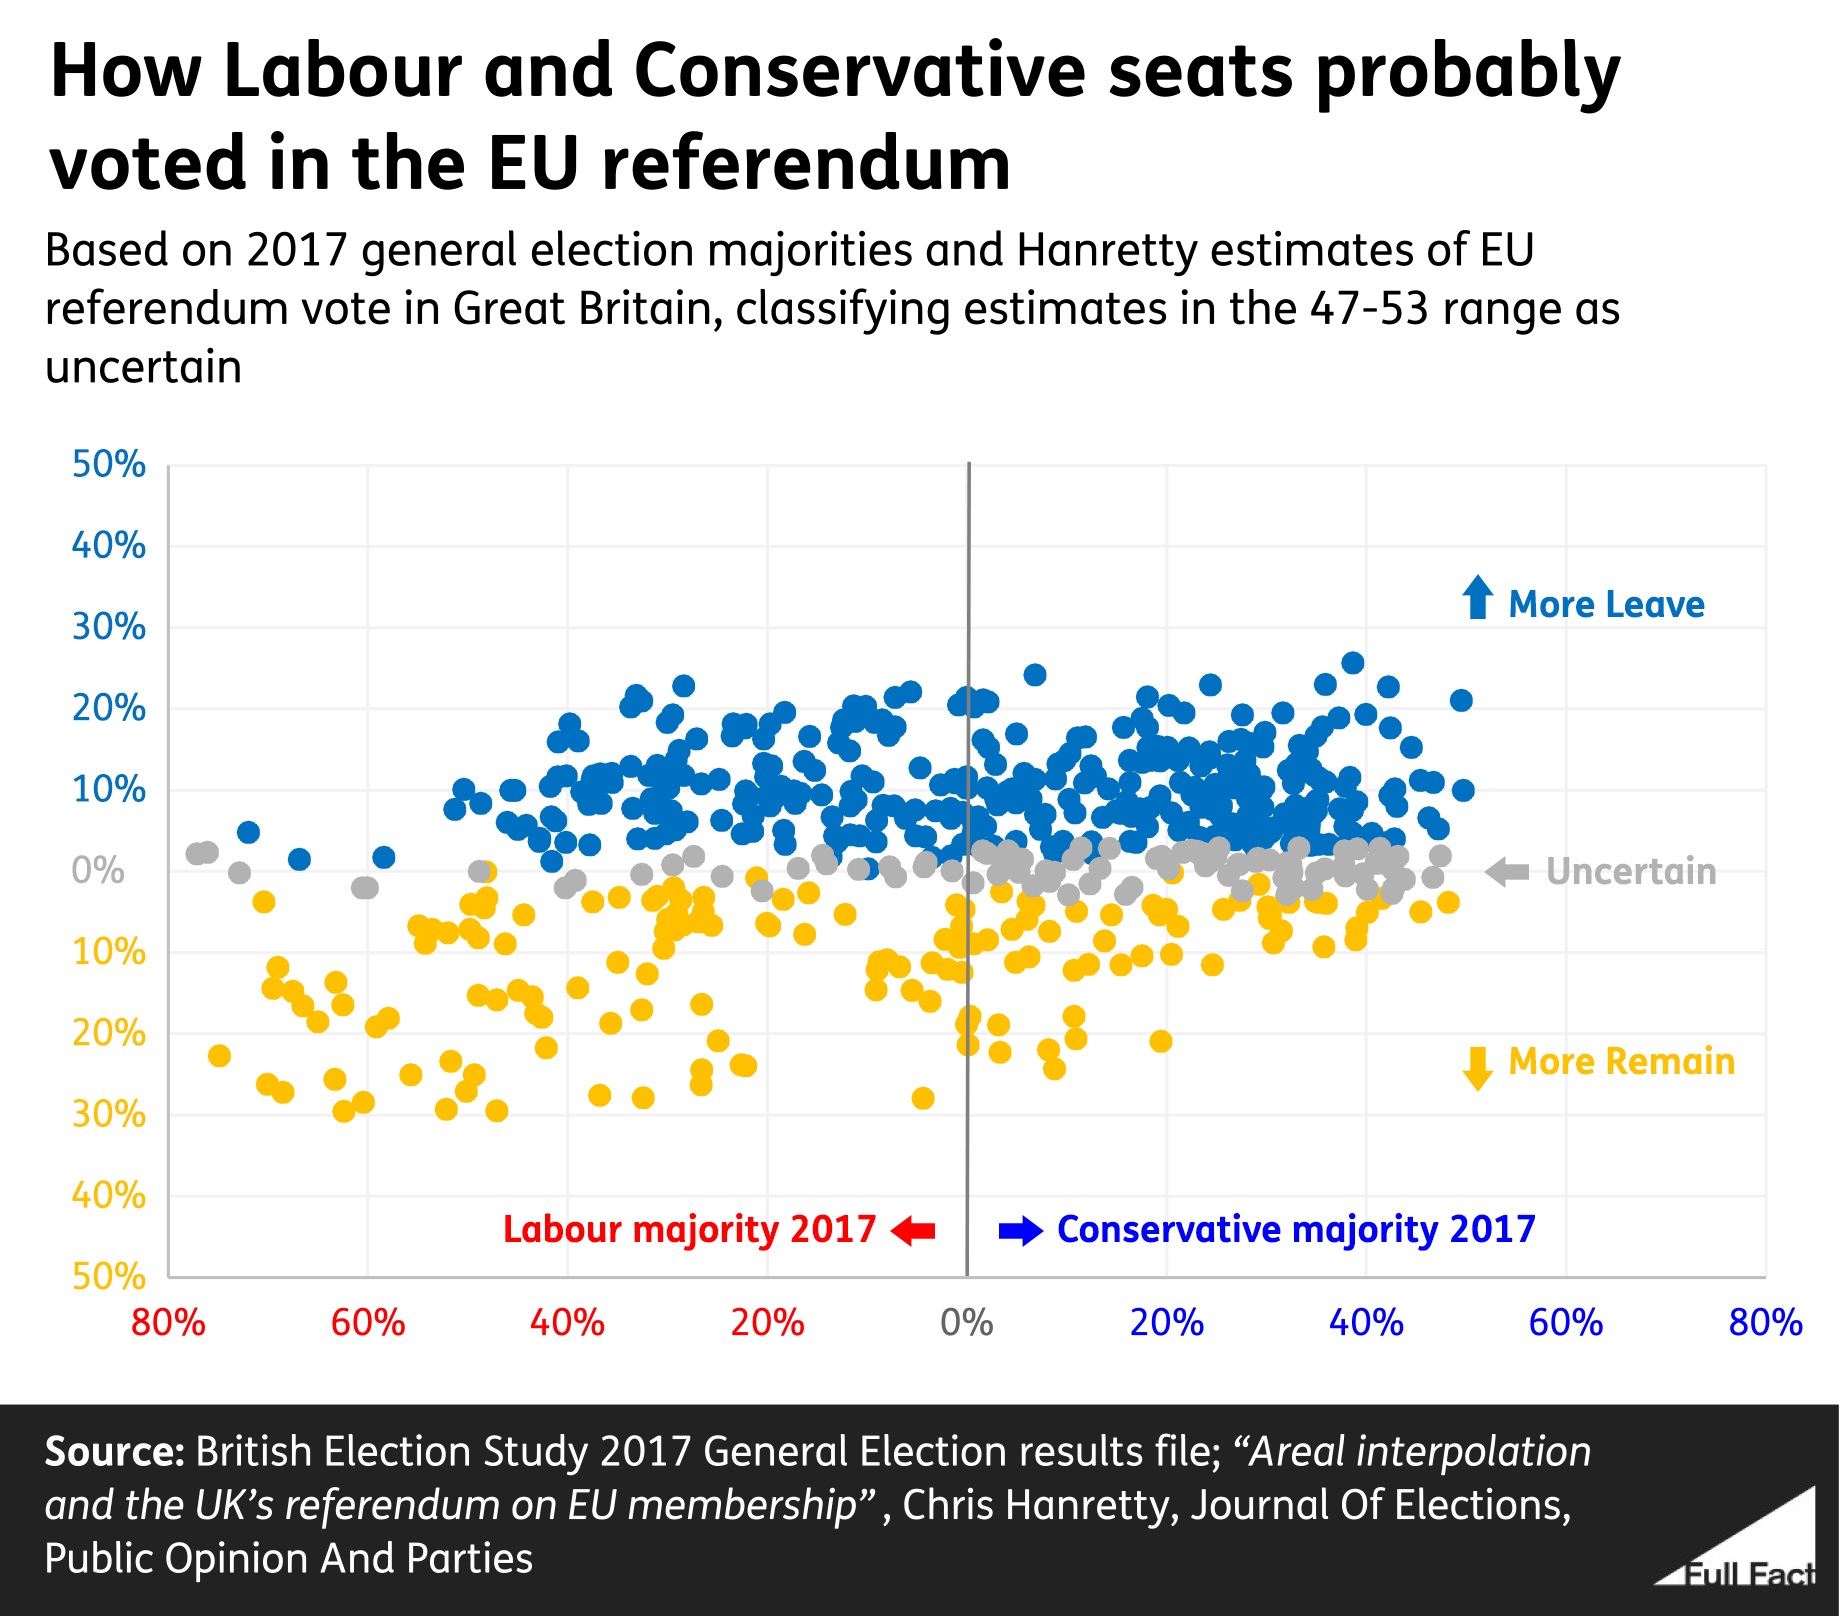 Scatter plot showing estimated Leave and Remain votes in Conservative and Labour parliamentary constituencies